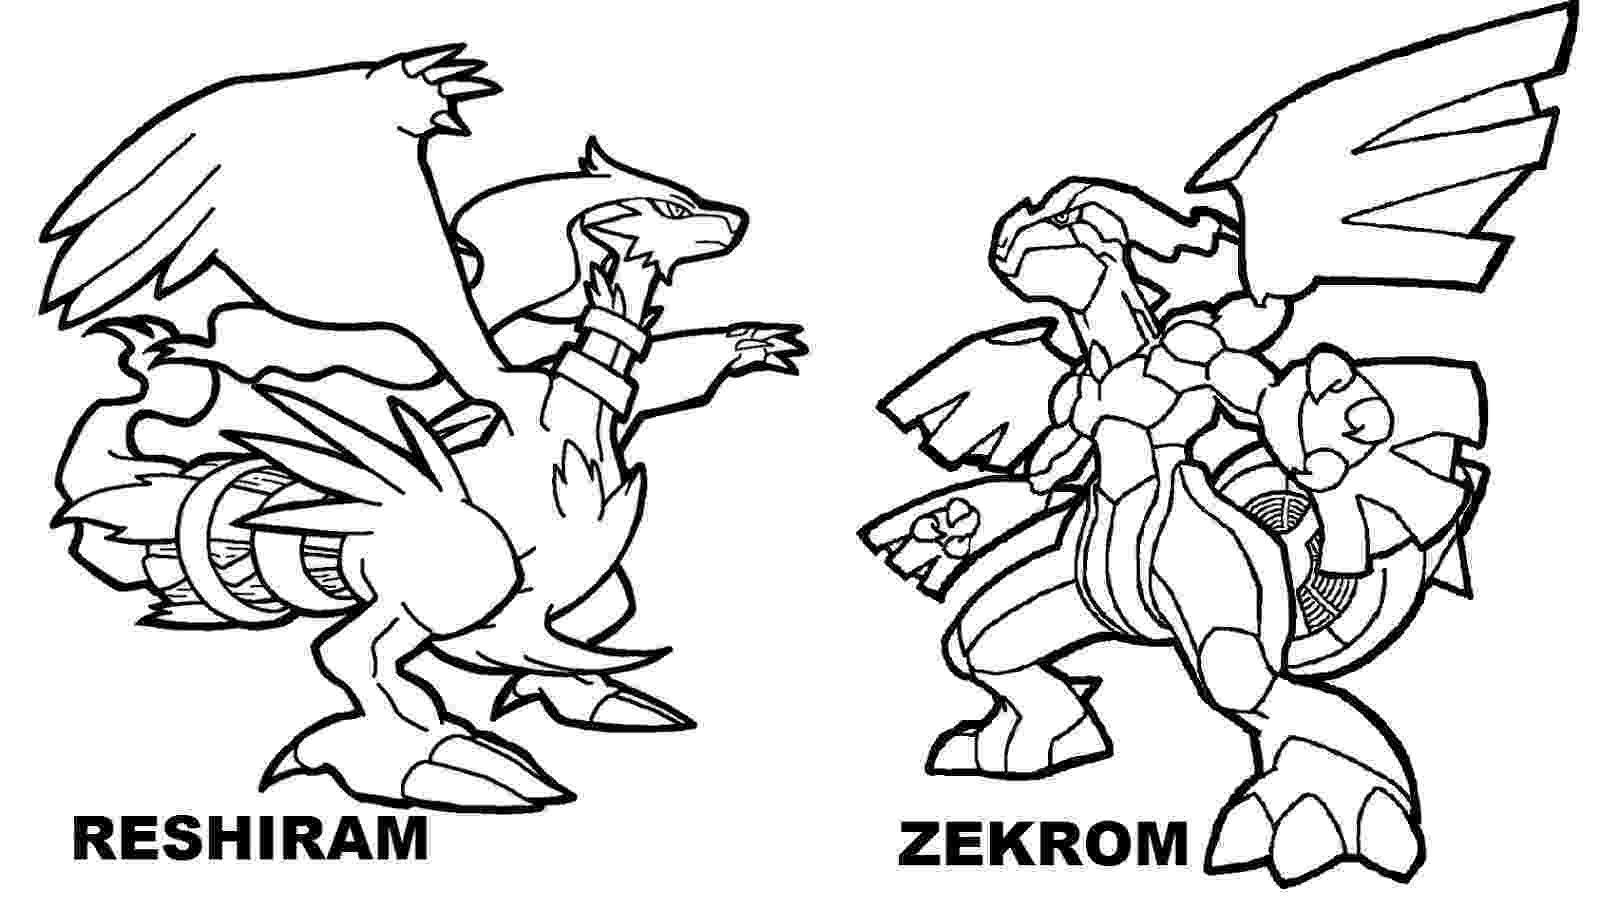 legendary pokemon coloring pages free legendary pokemon coloring pages for kids pokemon legendary coloring pages